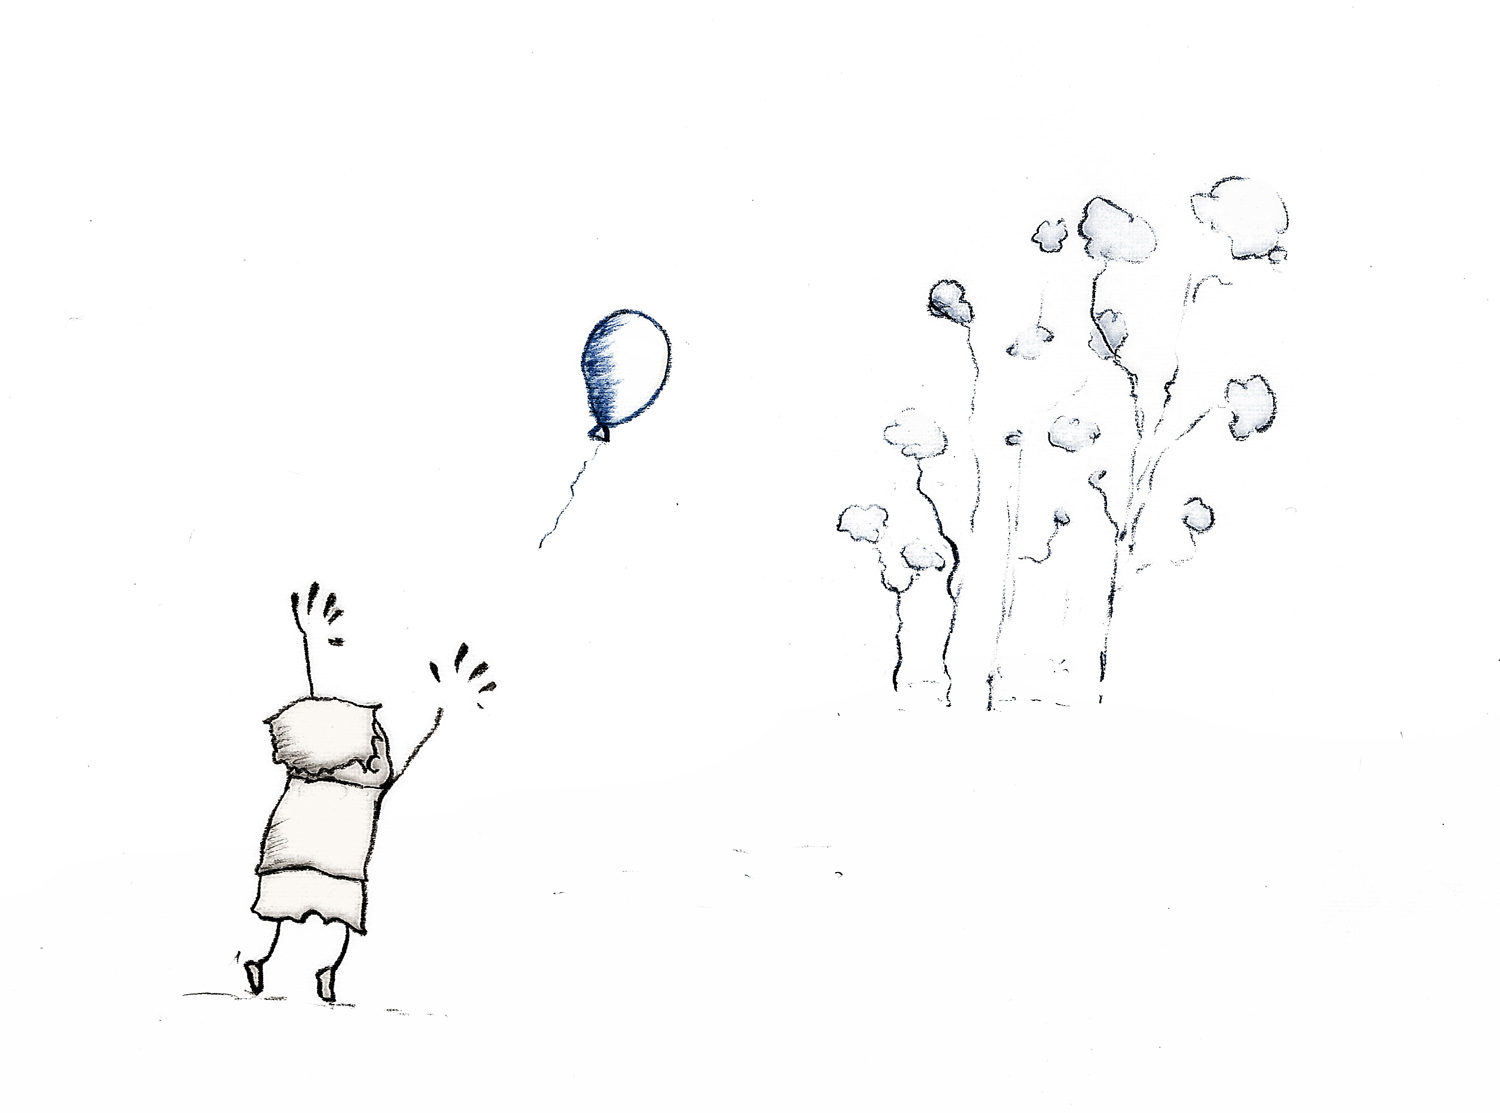 Boy and balloon pencil sketch boy and balloon